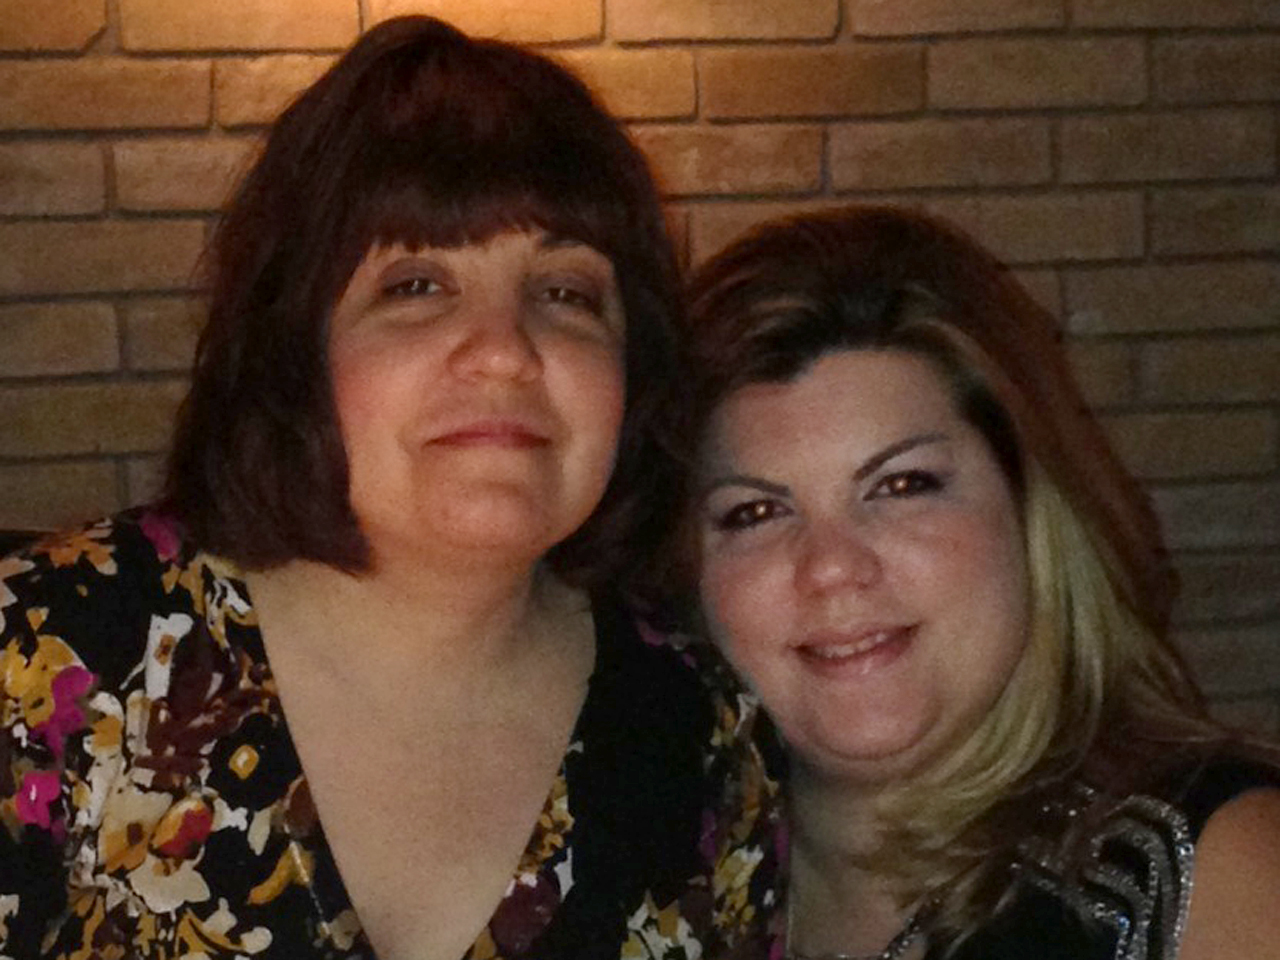 Katherine Perez, 37, right, was diagnosed with breast cancer in March. Her sister, Gina Garcia, 44, was diagnosed with the disease this summer. Both s...